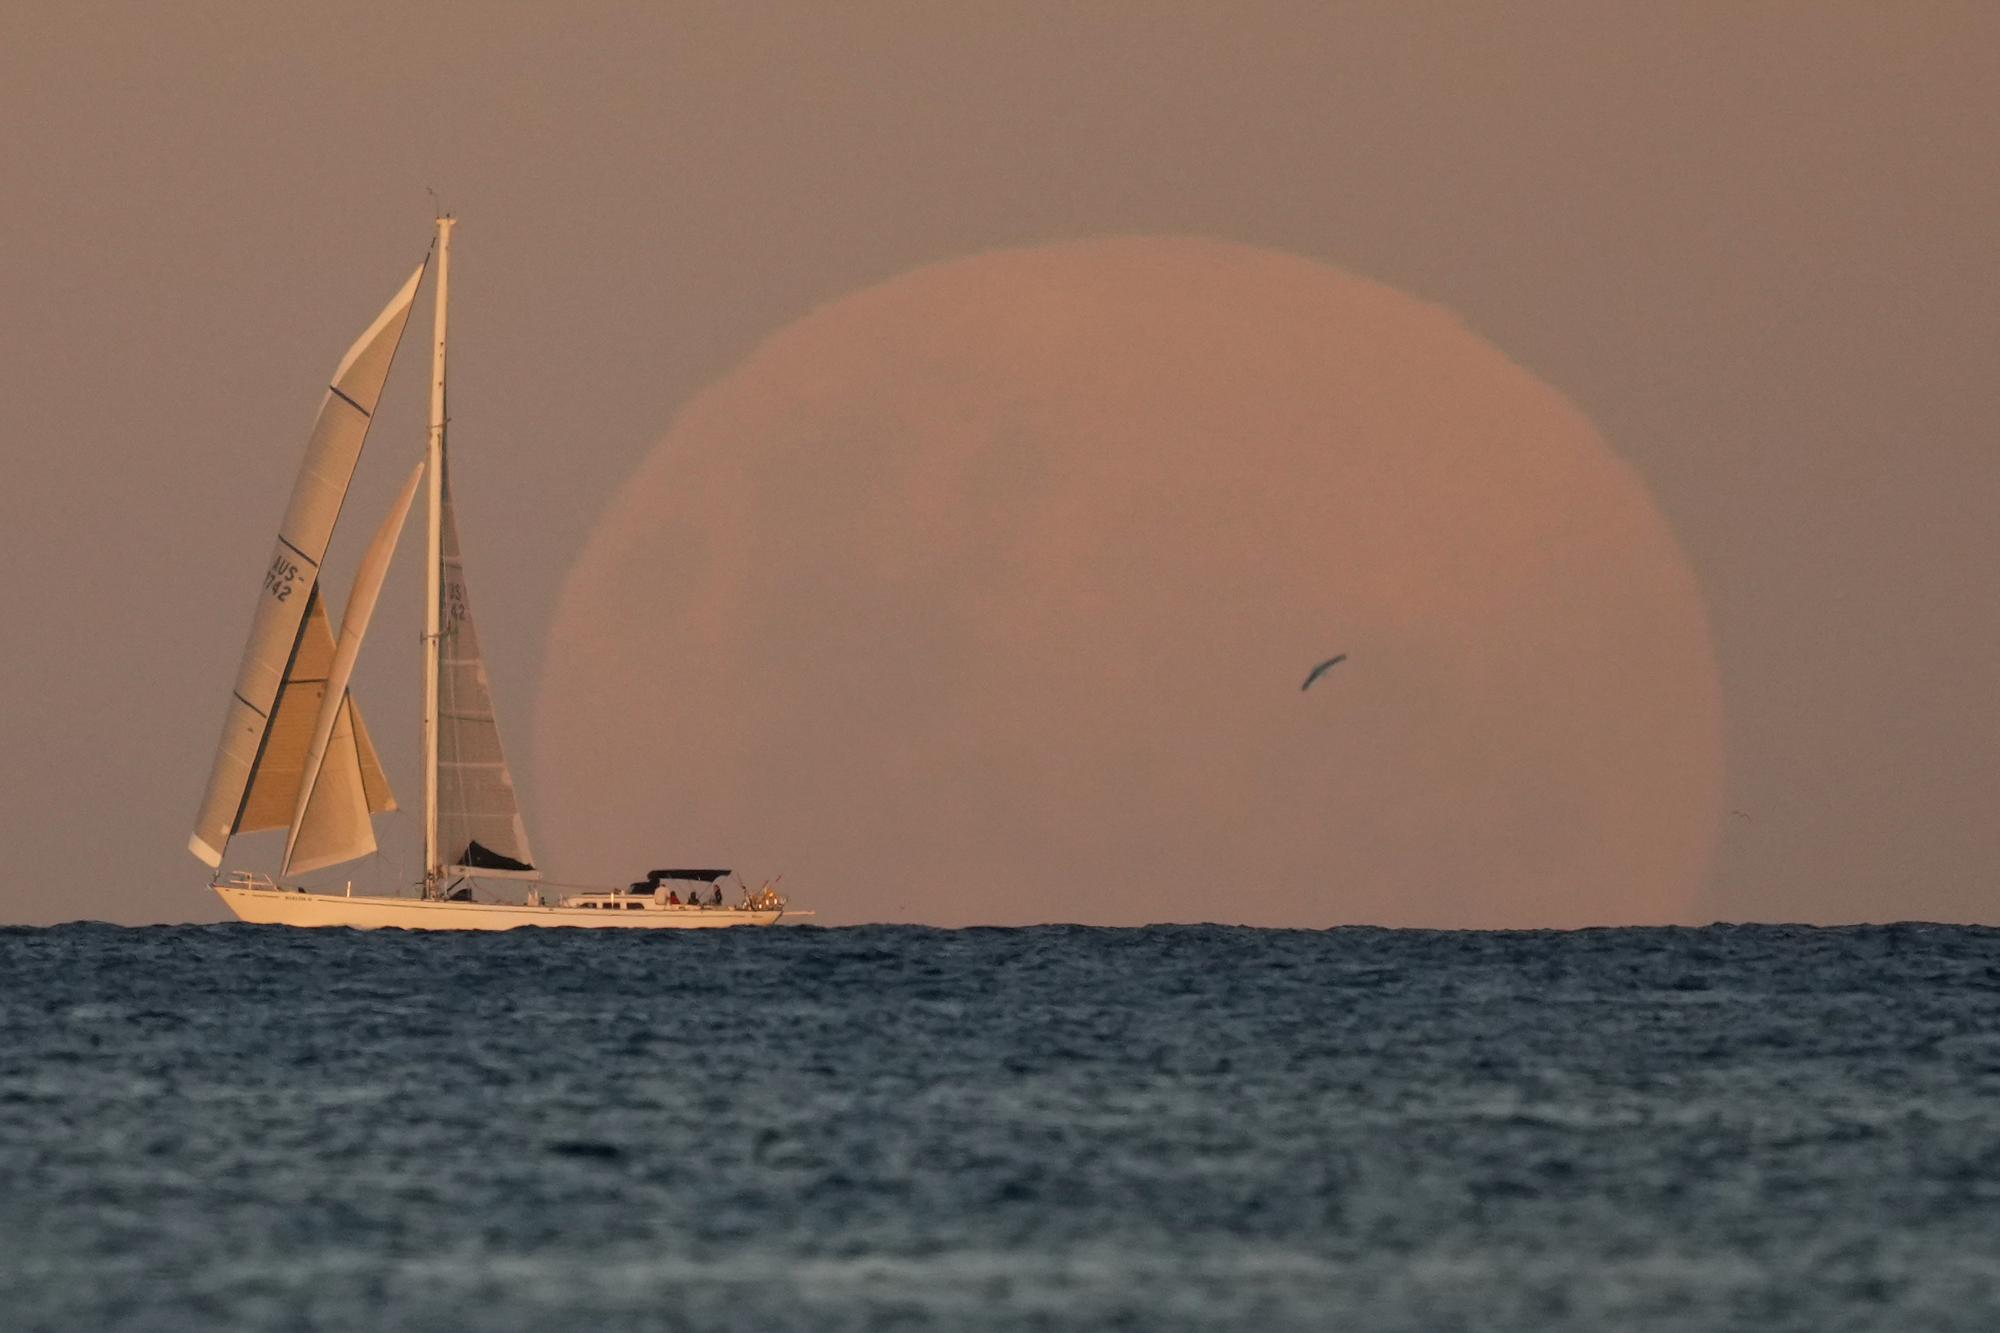 A yacht sails past as the moon rises in Sydney Wednesday, May 26, 2021. (AP Photo/Mark Baker)